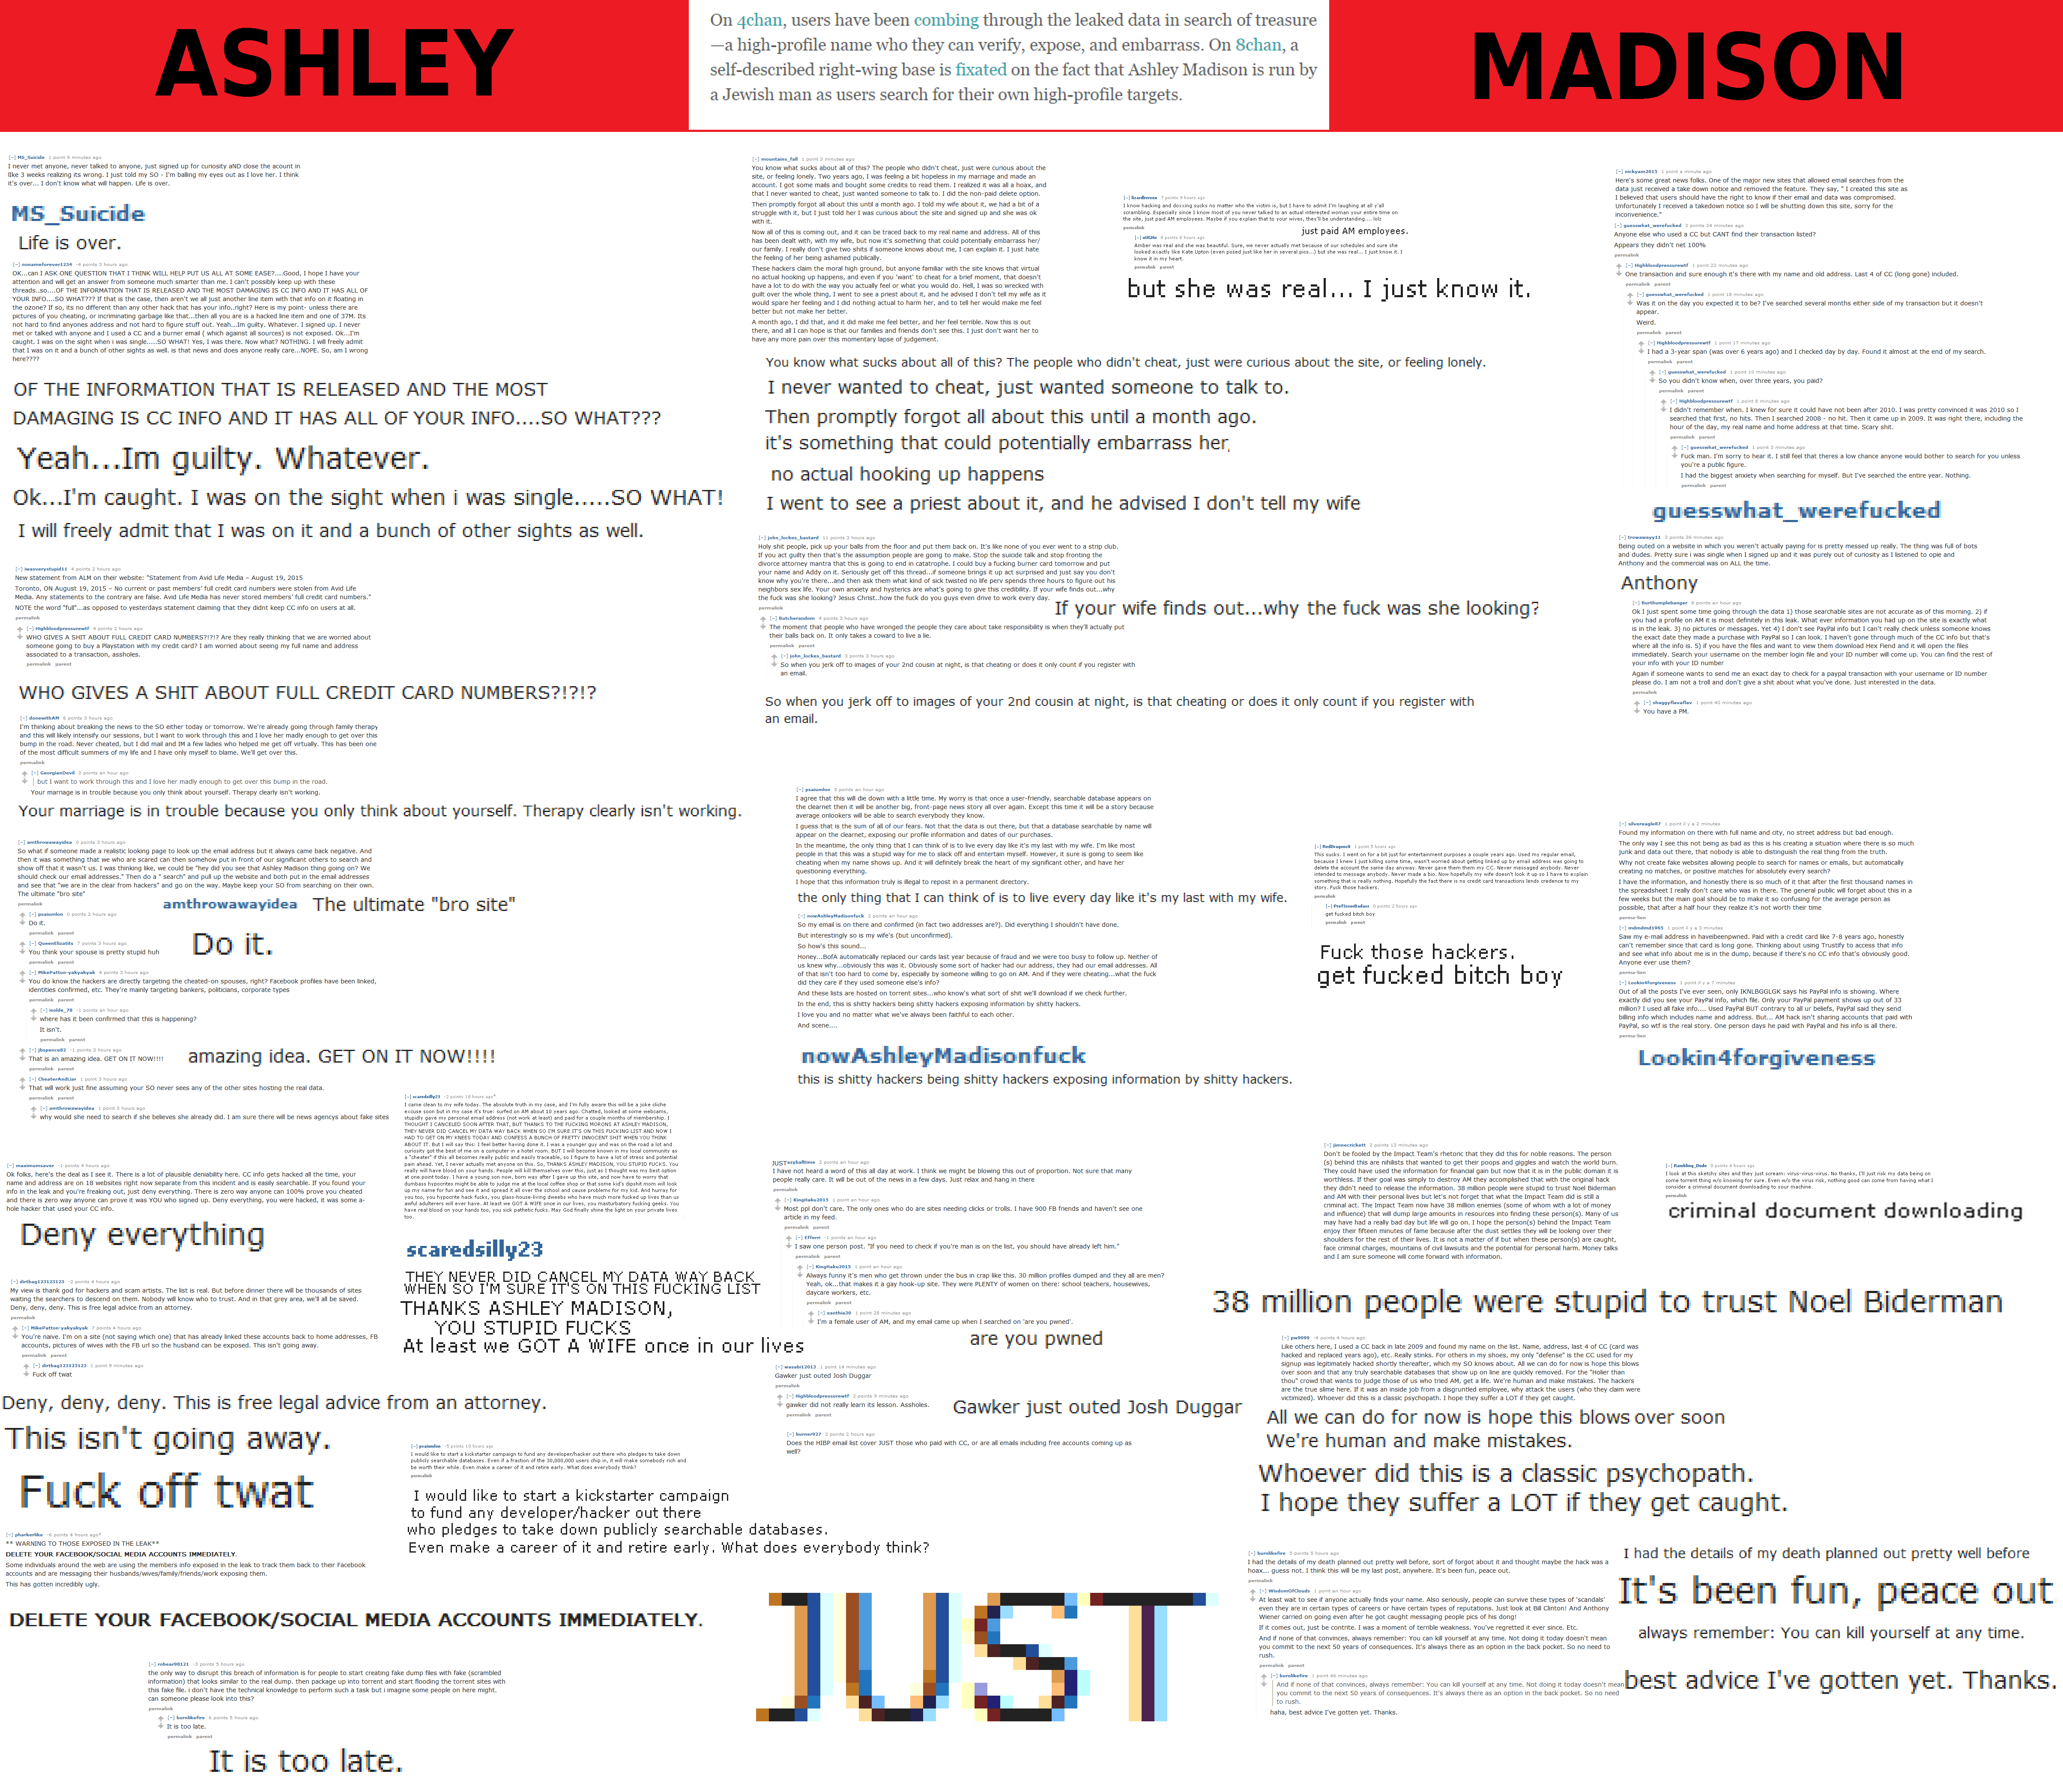 ASHLEY On 4chan, users have been combing through the leaked data in search  of